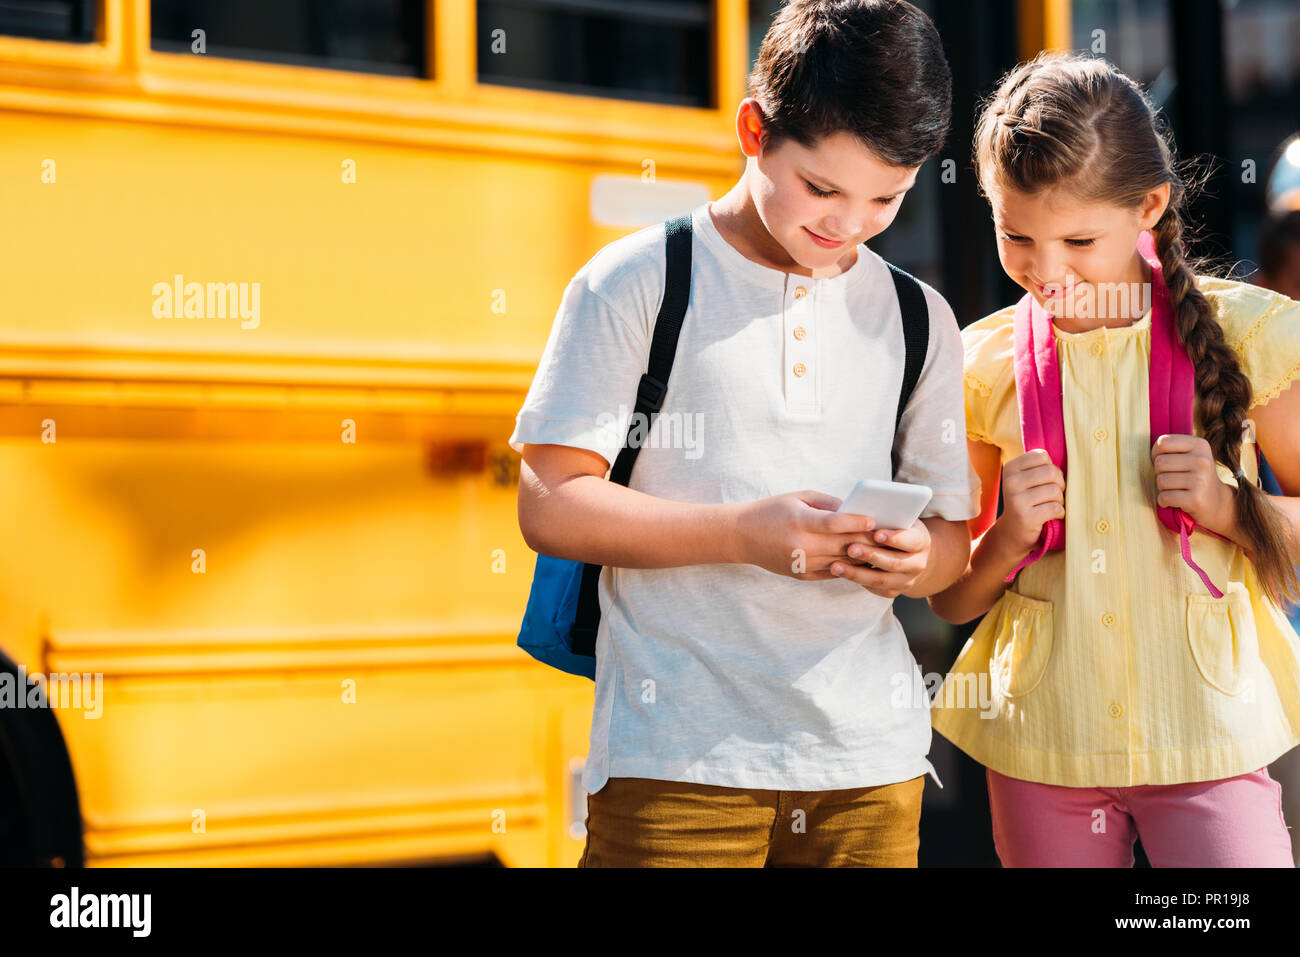 adorable little scholars using smartphone together in front of school bus - Stock Image